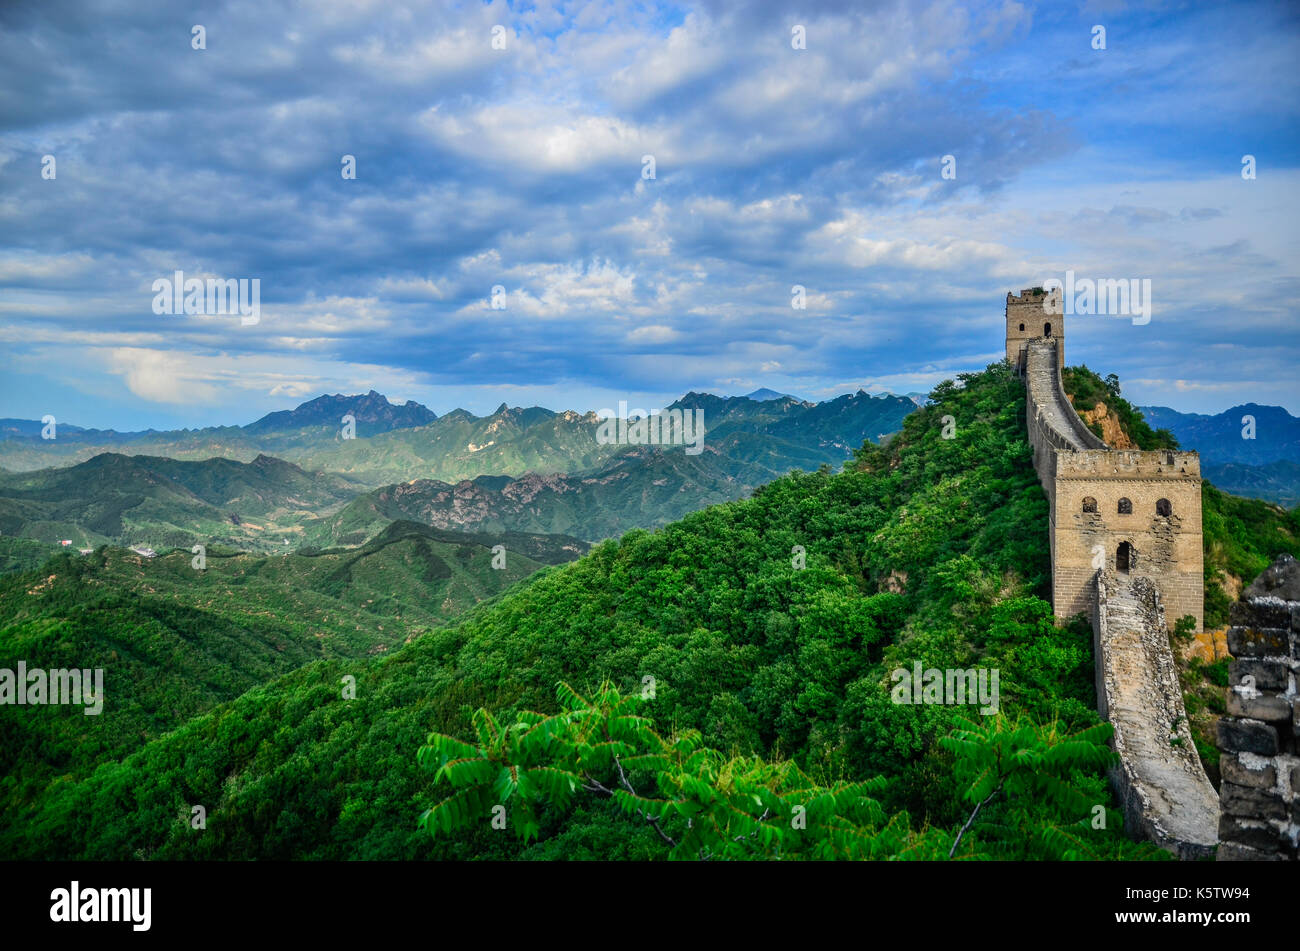 Great Wall Of China Landscape - Stock Image